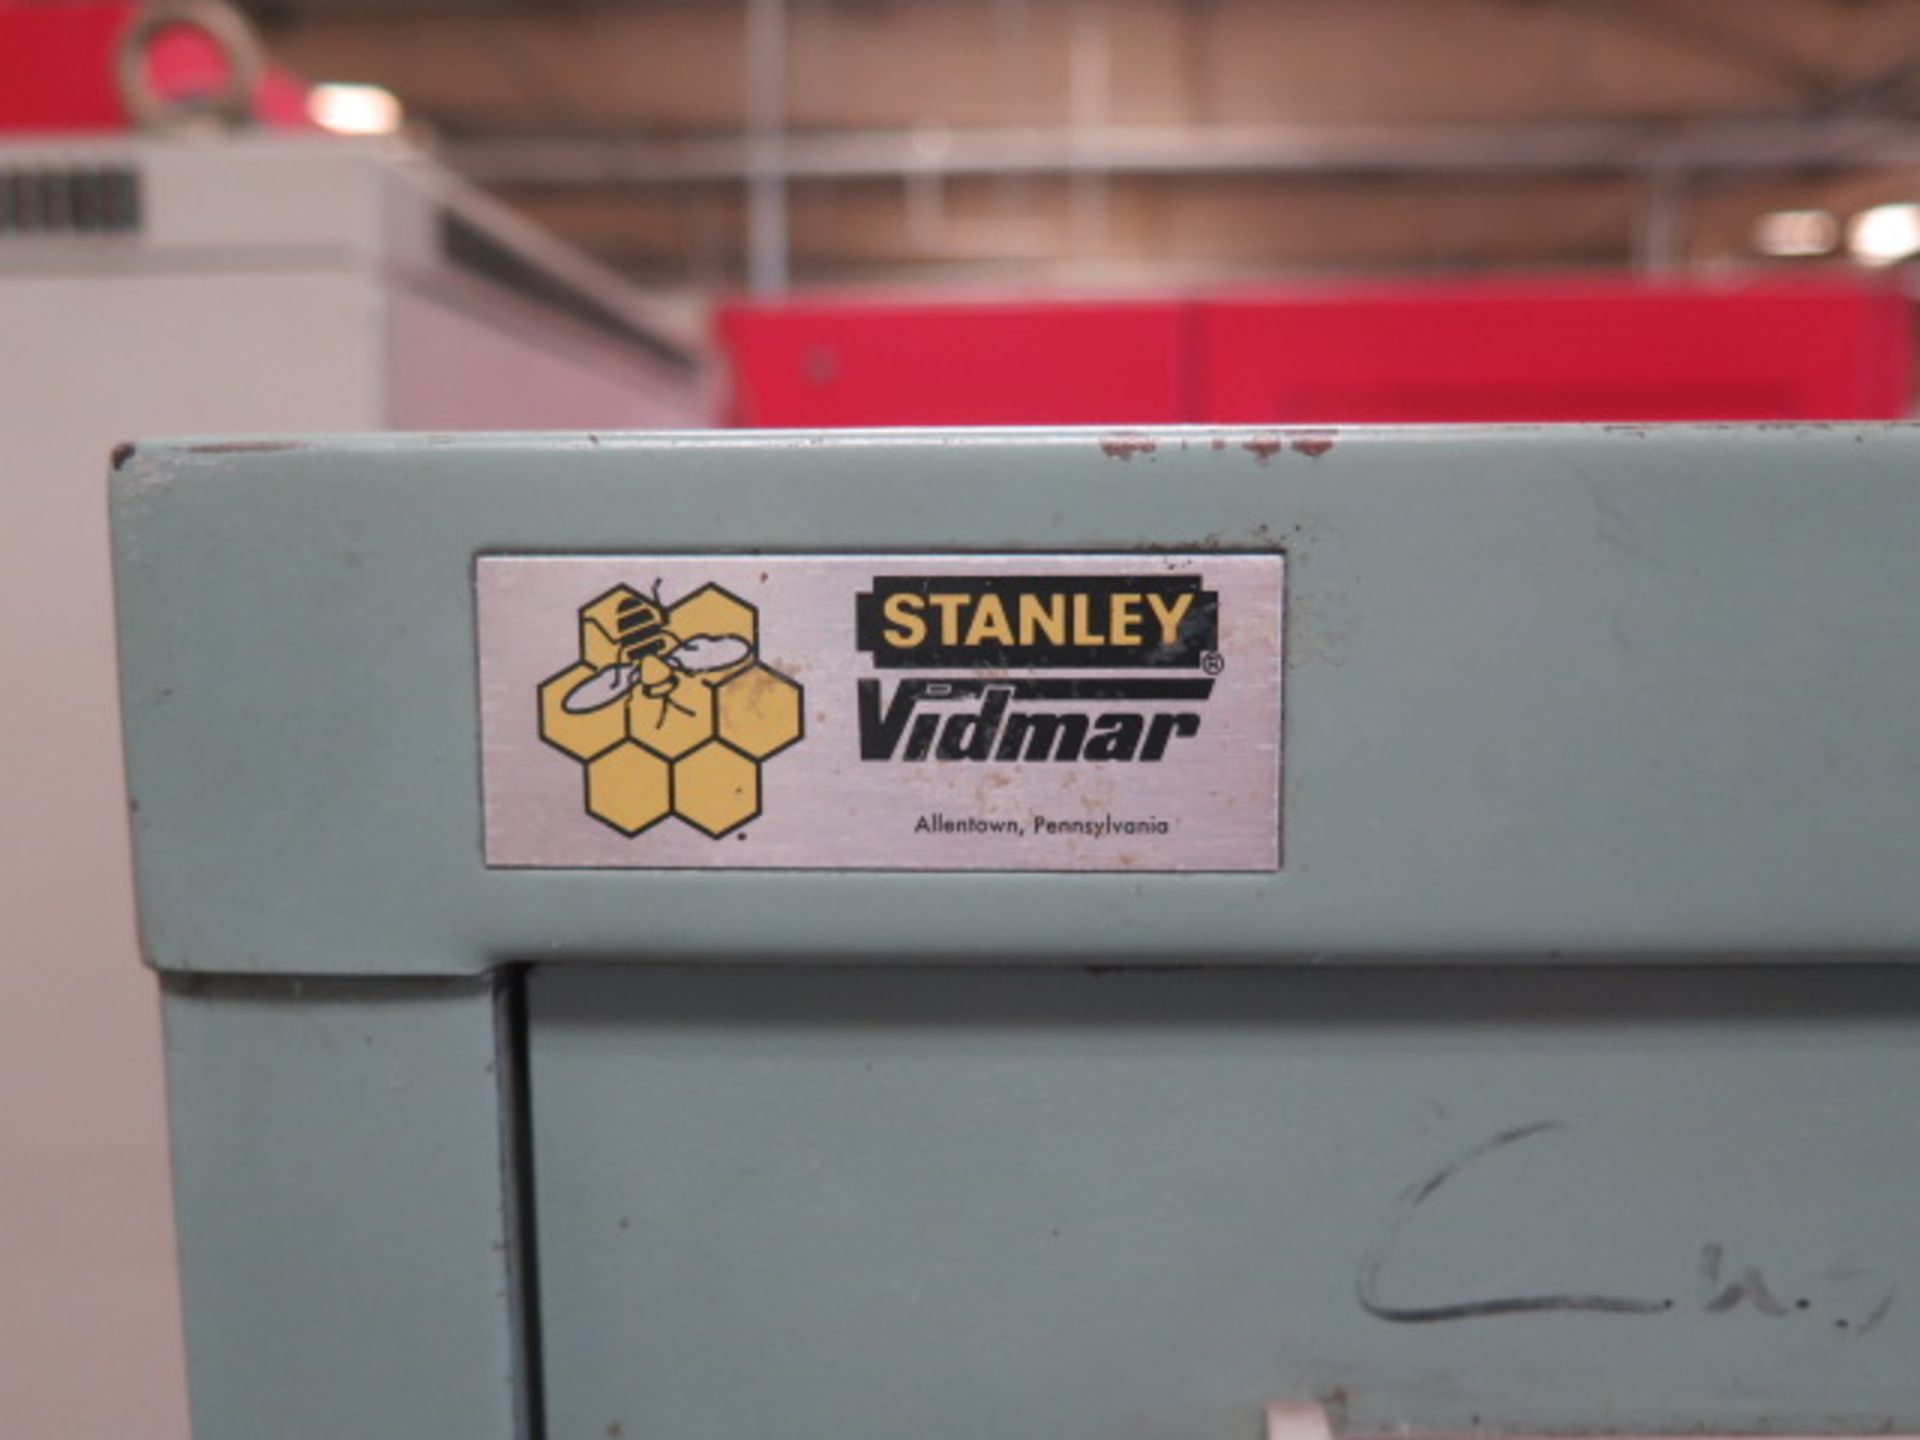 Vidmar 10-Drawer Tooling Cabinet w/ Vise Jaws (SOLD AS-IS - NO WARRANTY) - Image 3 of 11